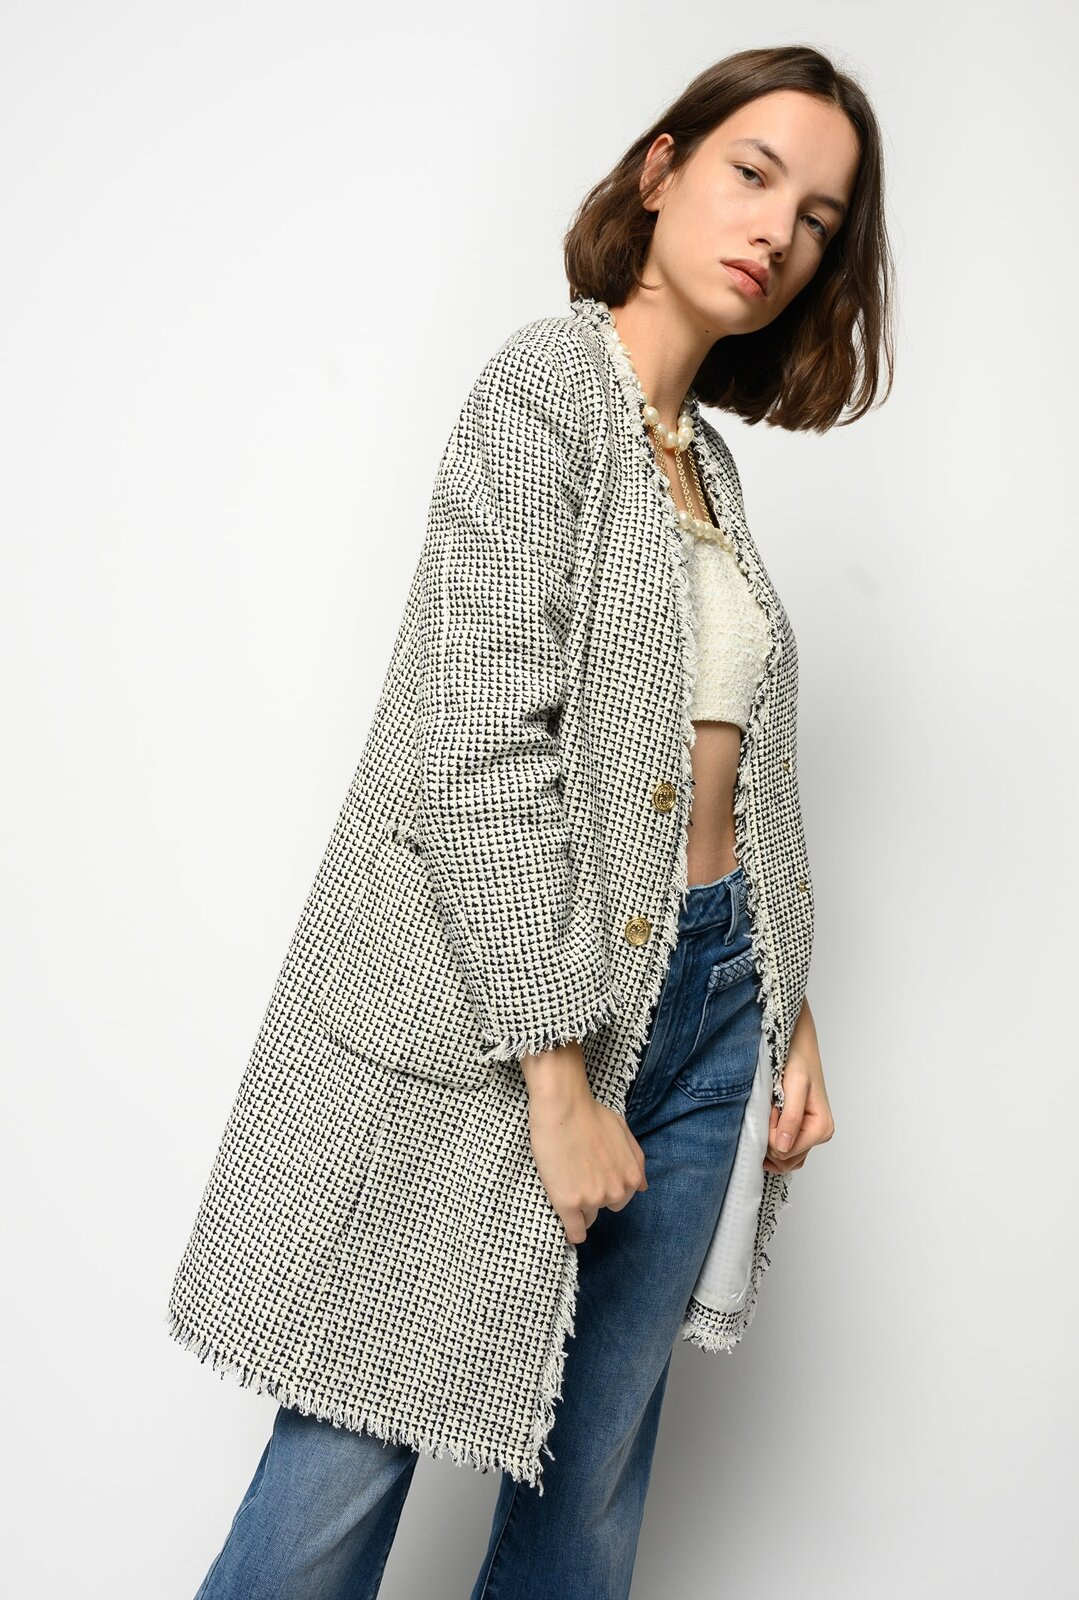 Giacca Lunga In Tweed Fantasia - Pinko